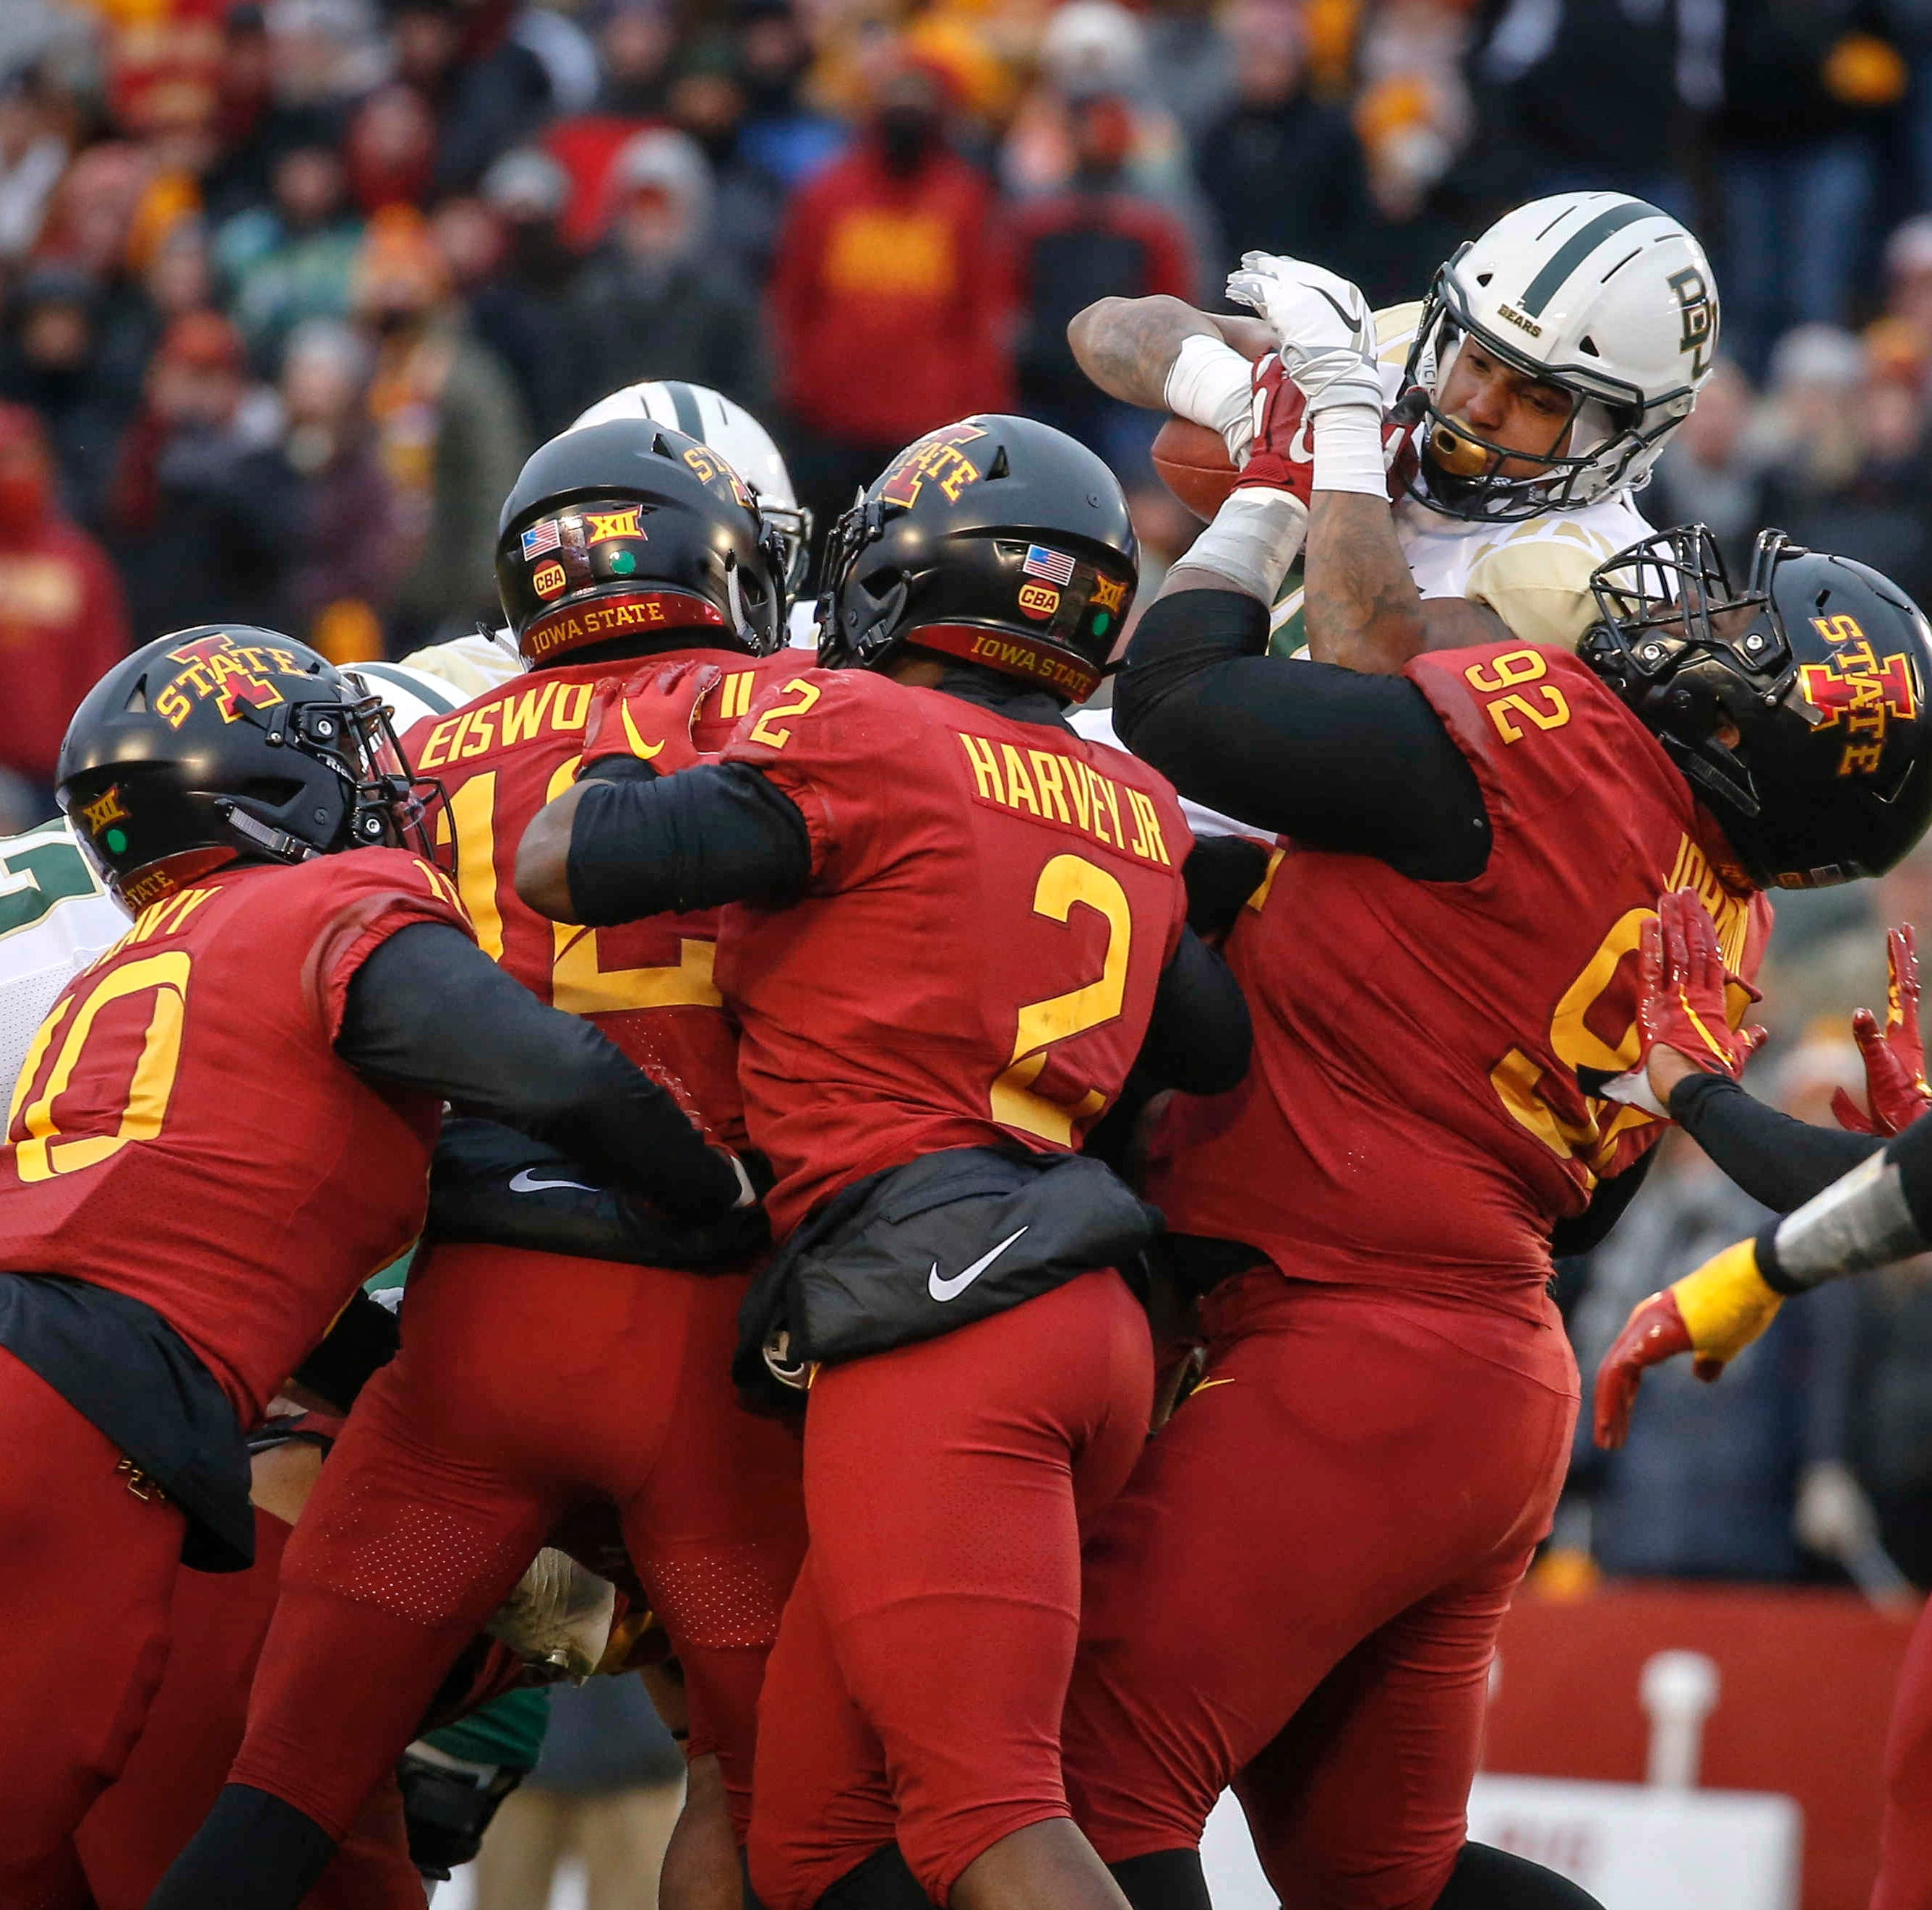 Iowa State football: Live updates of No. 18 Cyclones vs. No. 14 Texas